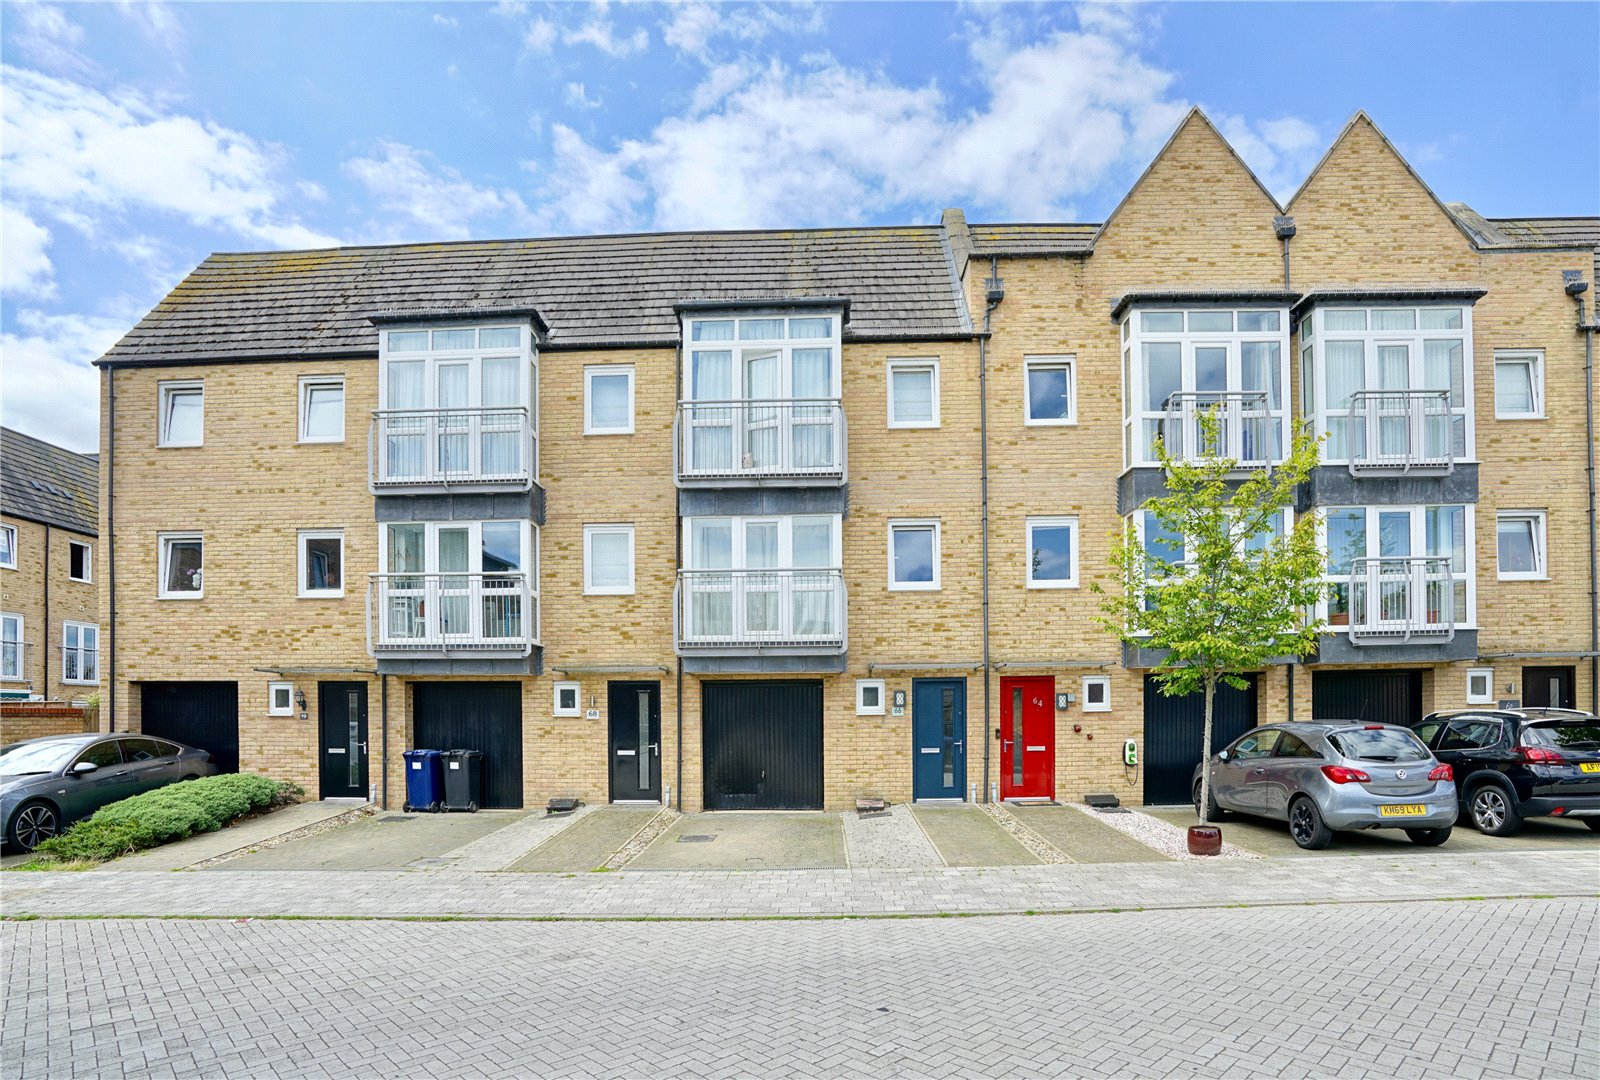 4 bed house for sale in Little Paxton, Samuel Jones Crescent, PE19 6QY - Property Image 1